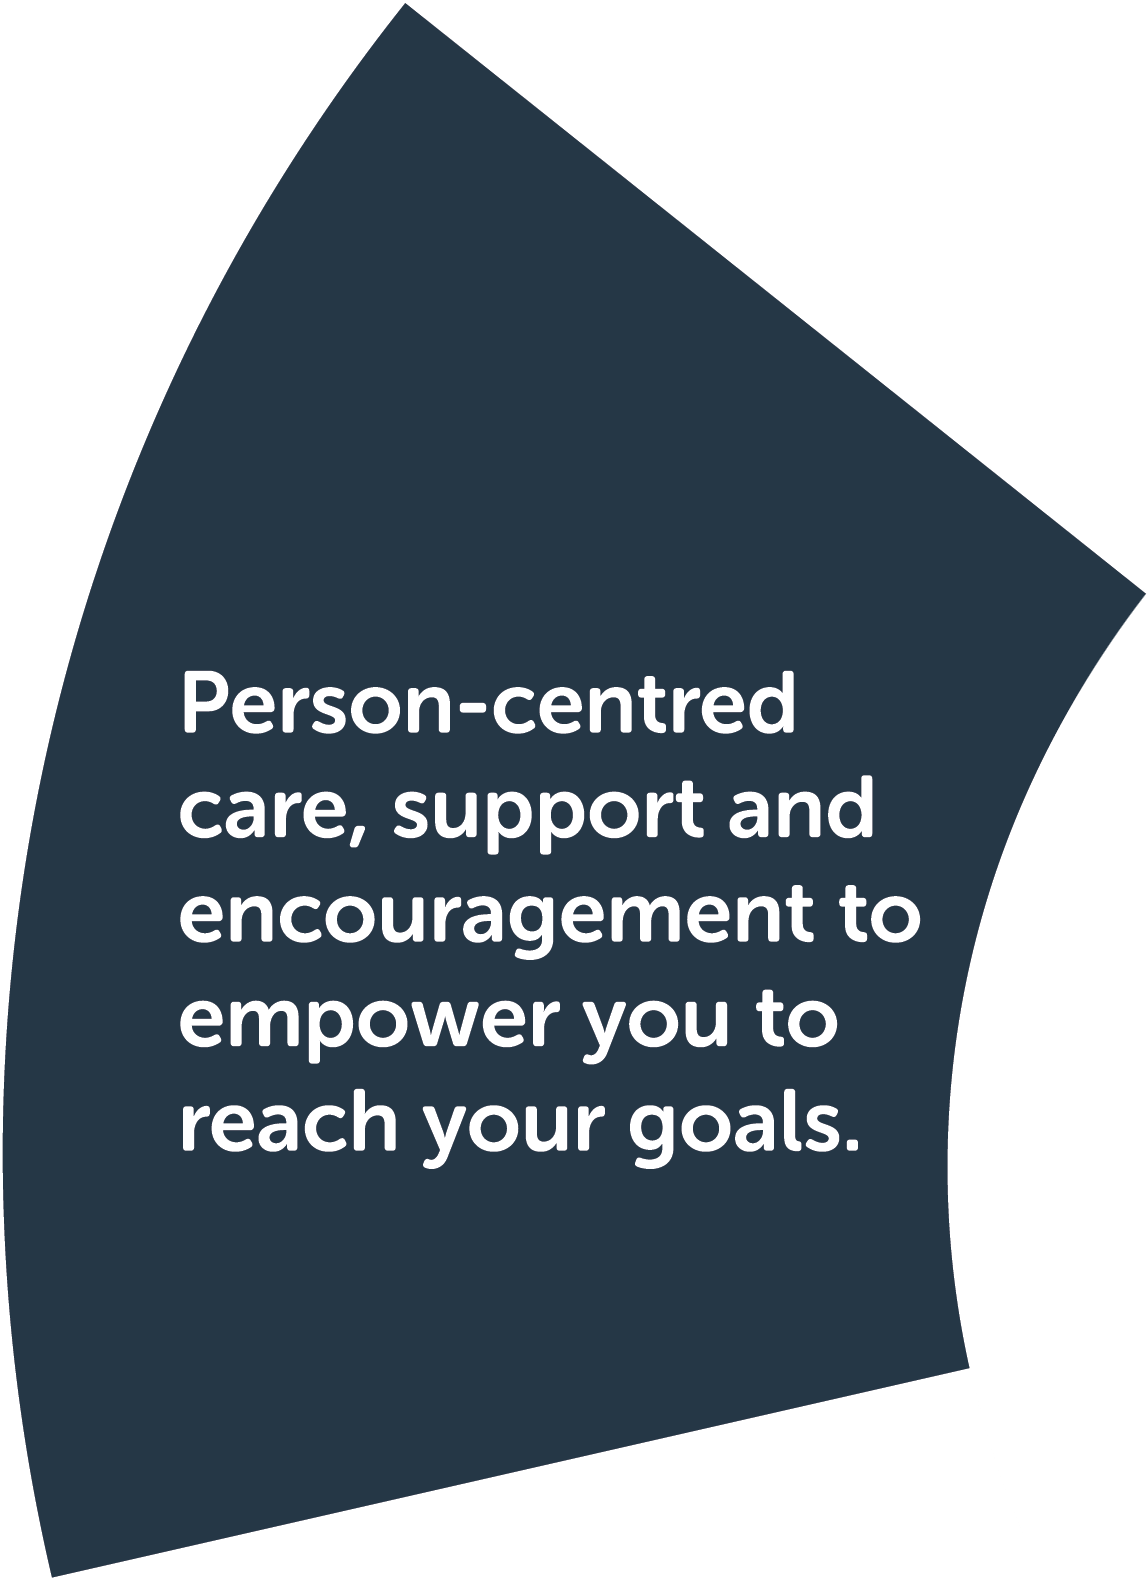 Step 6: Check my progress. Person-centred care, support and encouragement to empower you to reach your goals.